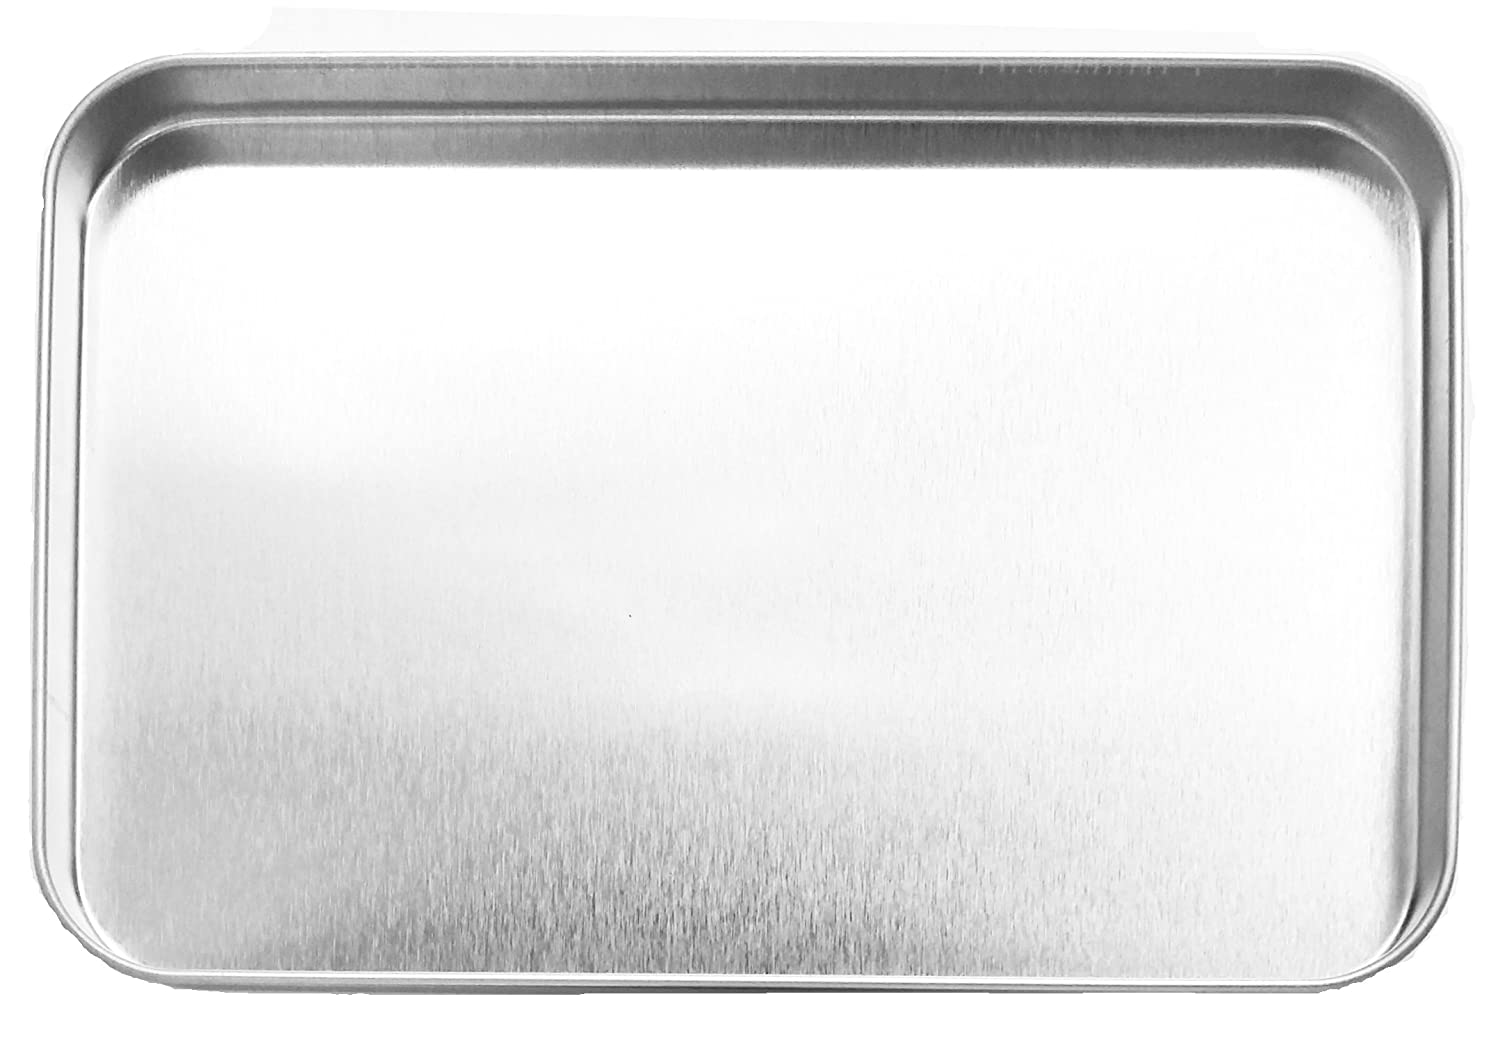 Quadrapoint Easy-Bake Ultimate Oven Baking Pan Replacement